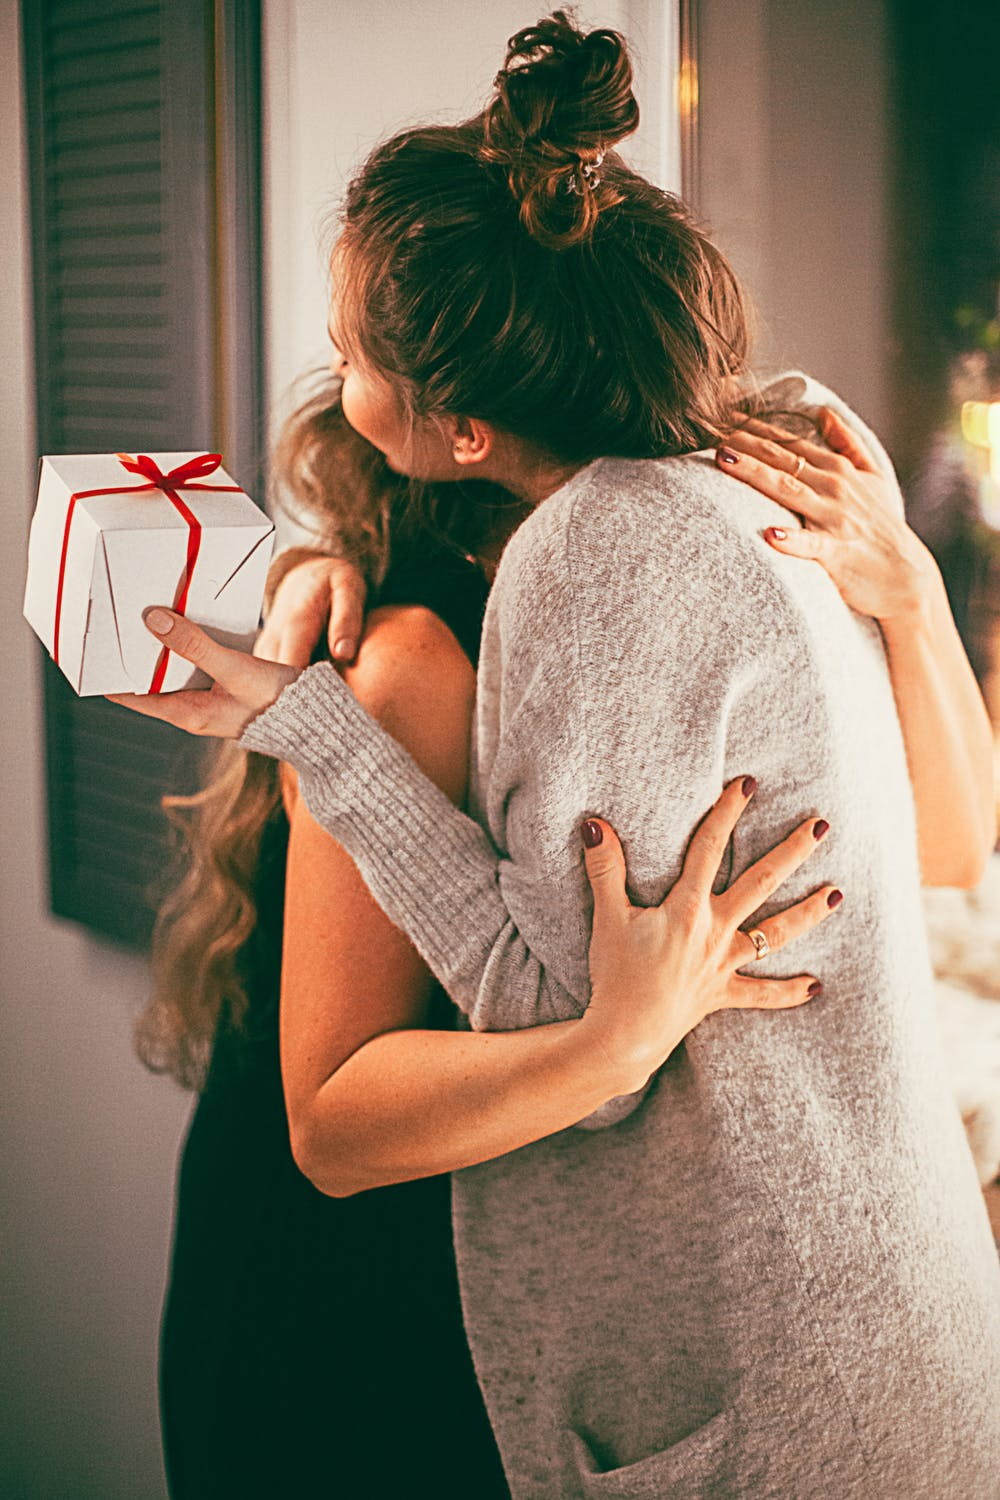 Mother and daughter hugging each other. | Photo: Pexels